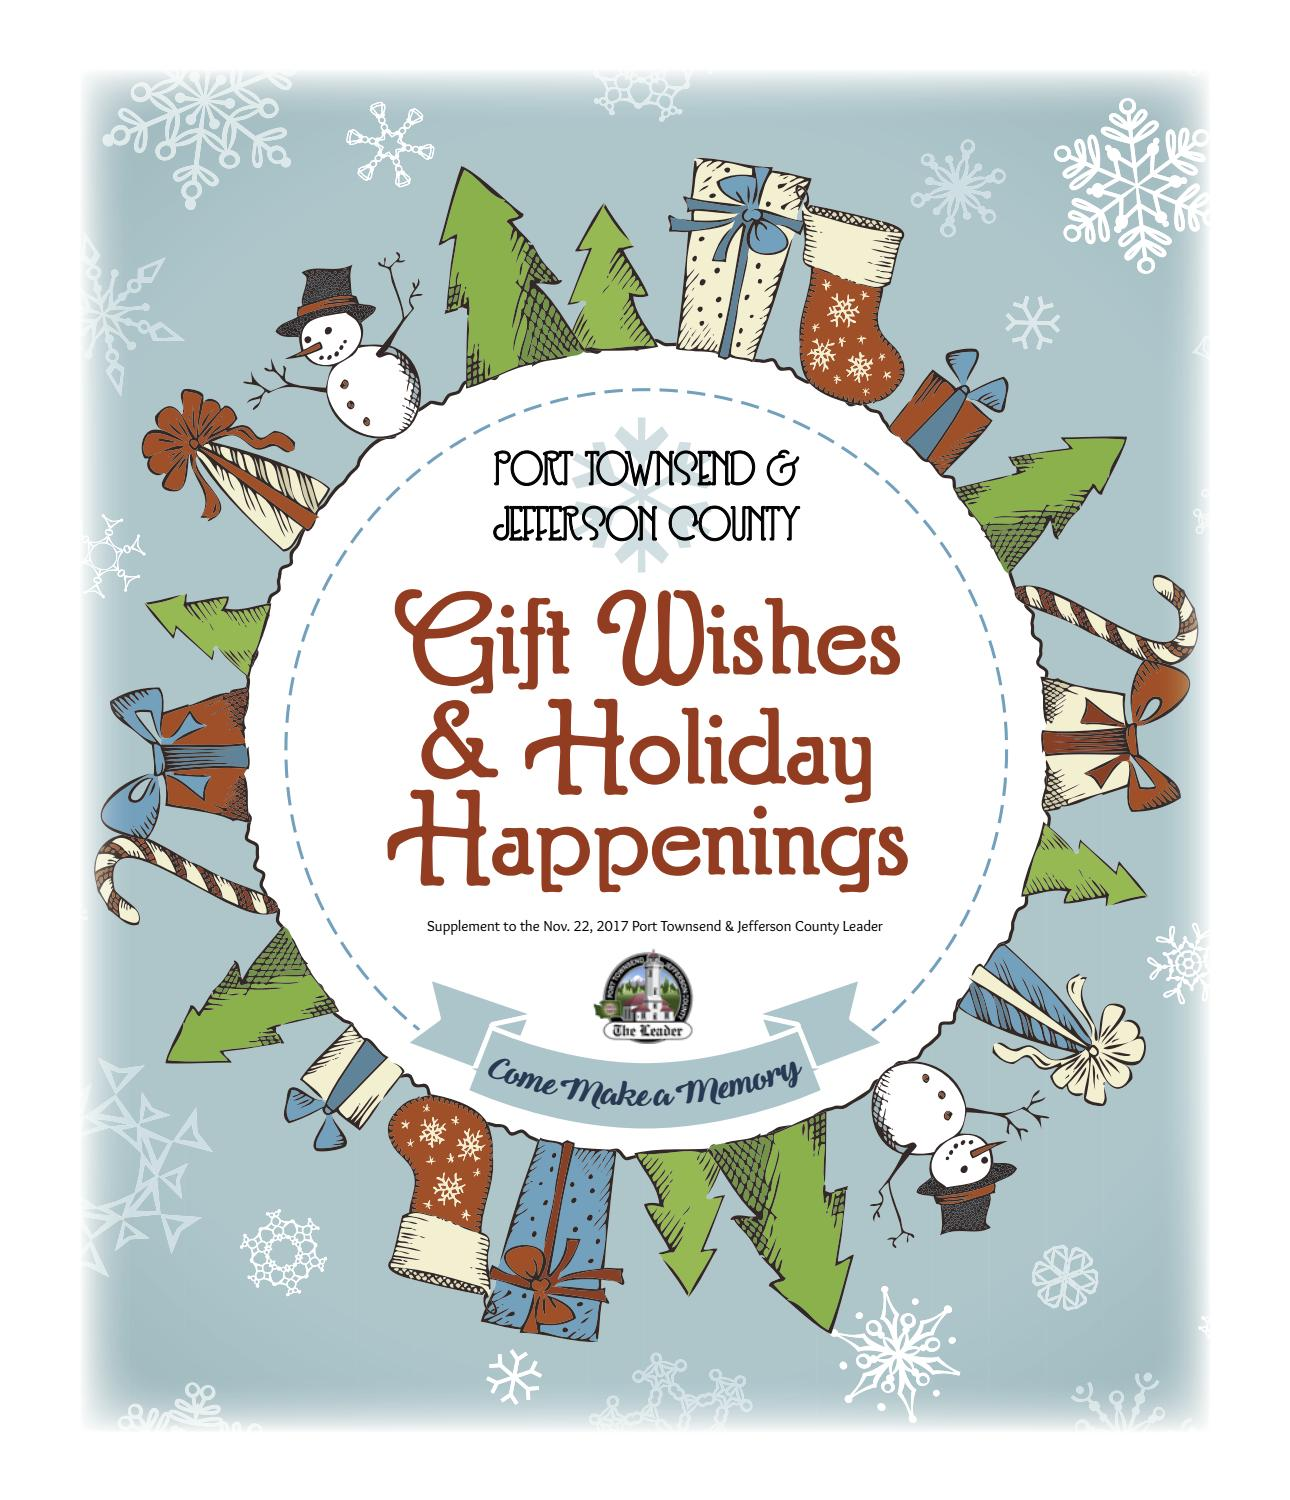 2017giftguidepages green edition by Port Townsend Leader - issuu